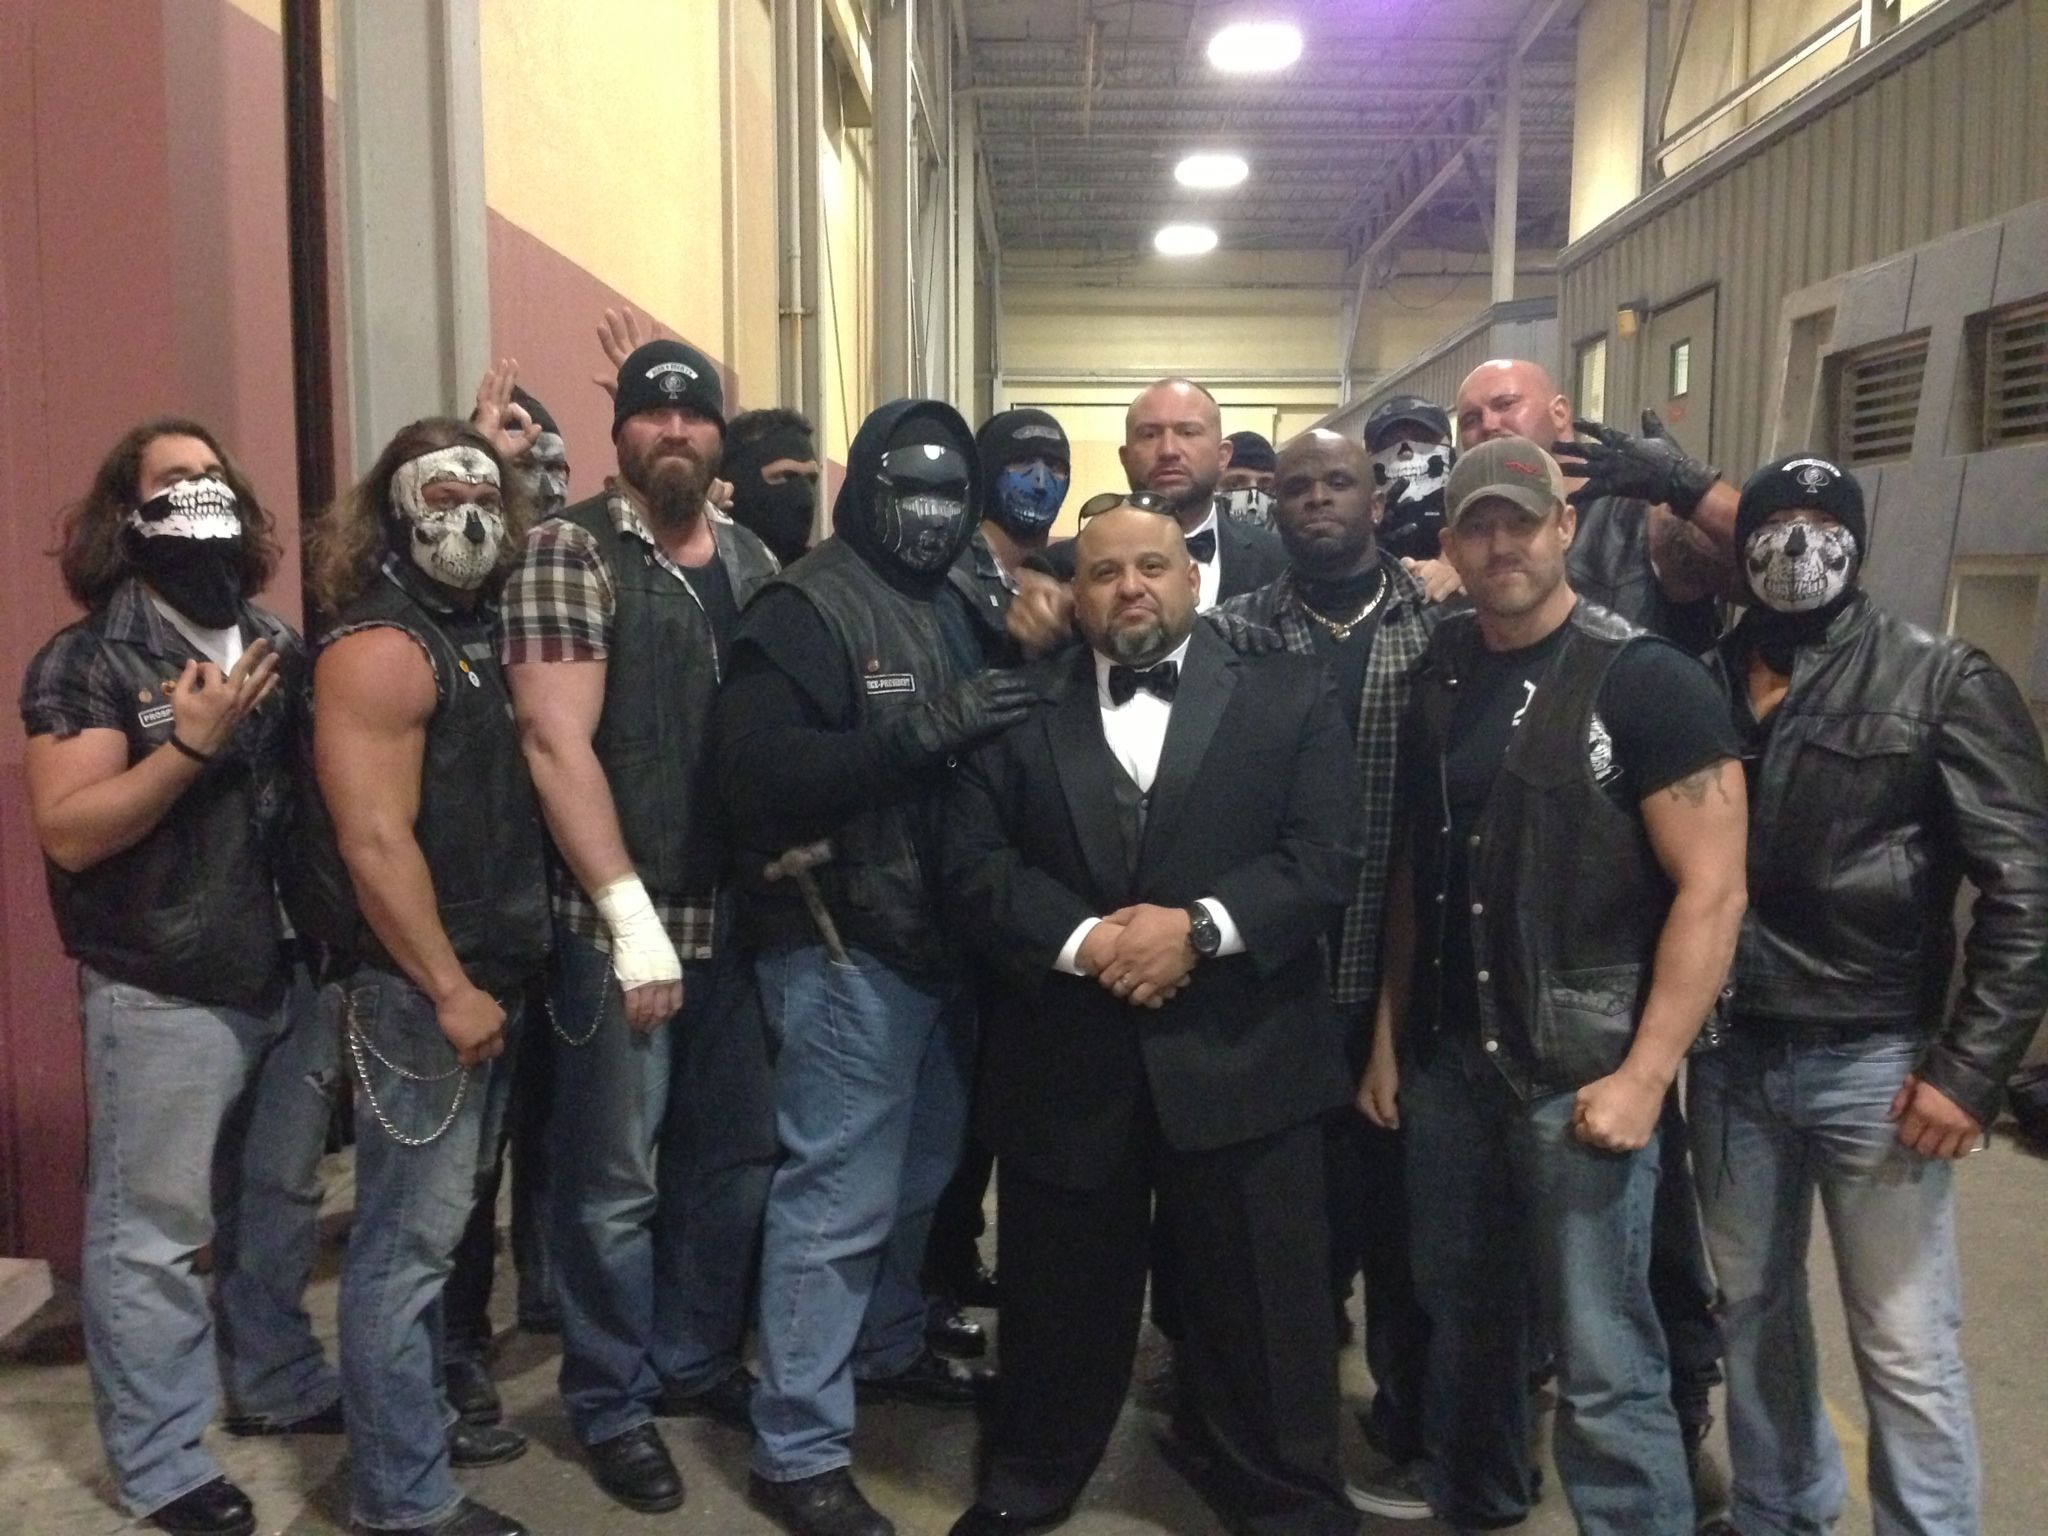 Great Ideas That Didn't Last: The Aces & Eights | Ring the Damn Bell